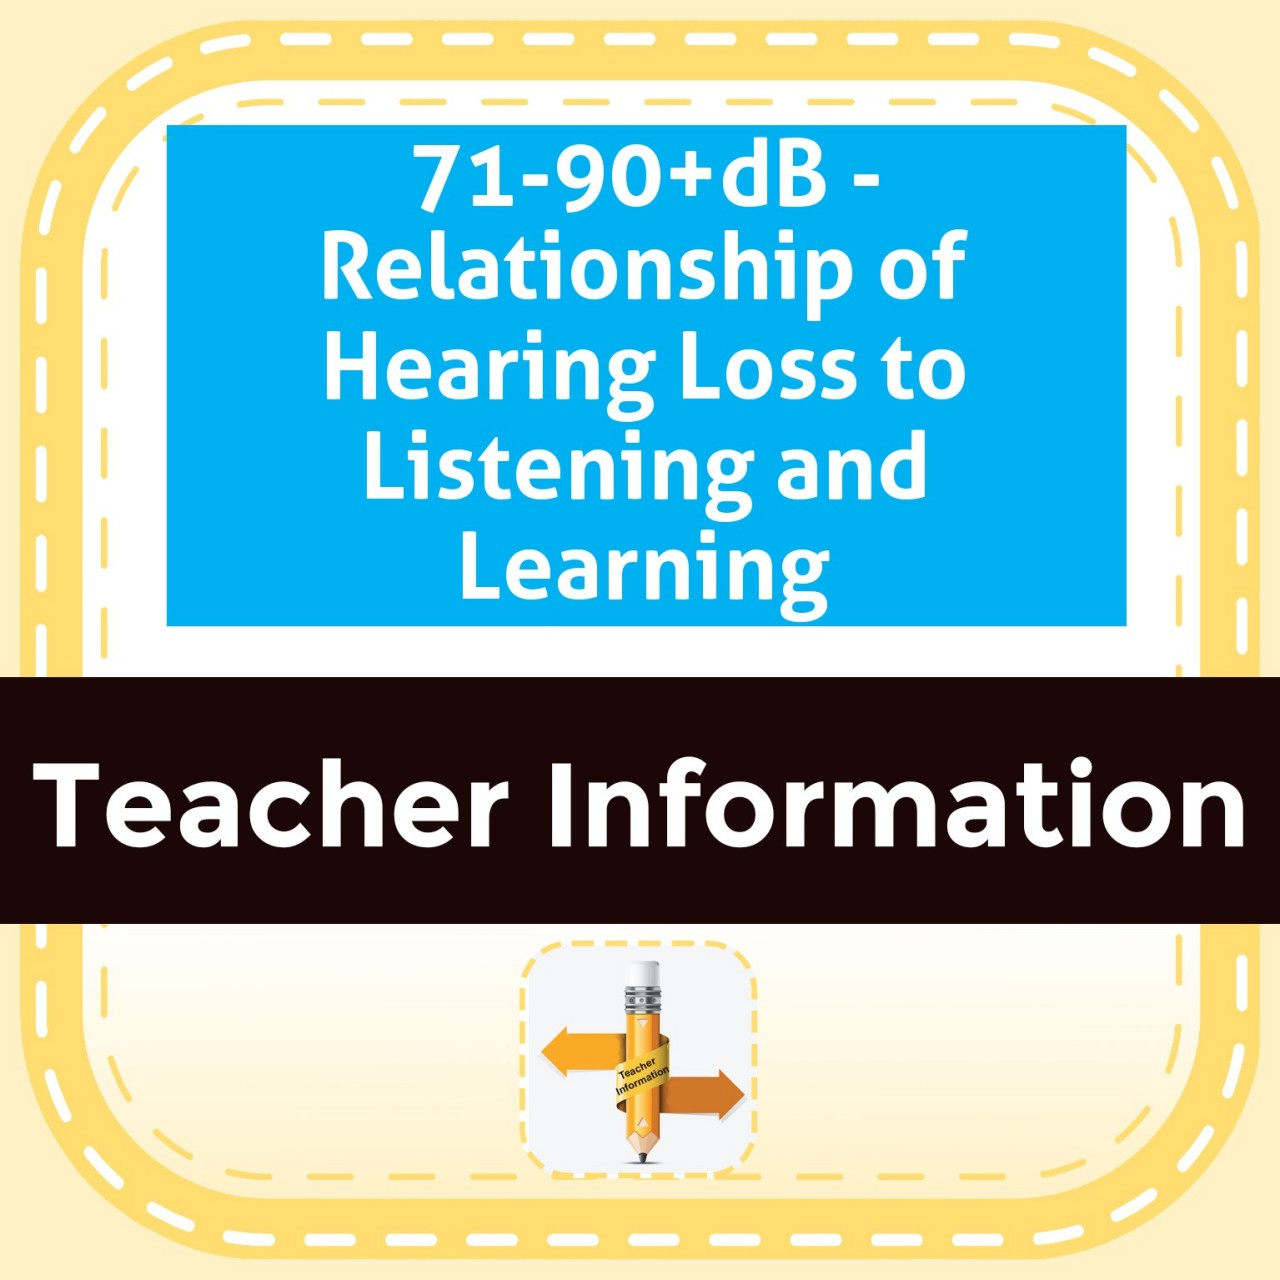 71-90+dB - Relationship of Hearing Loss to Listening and Learning